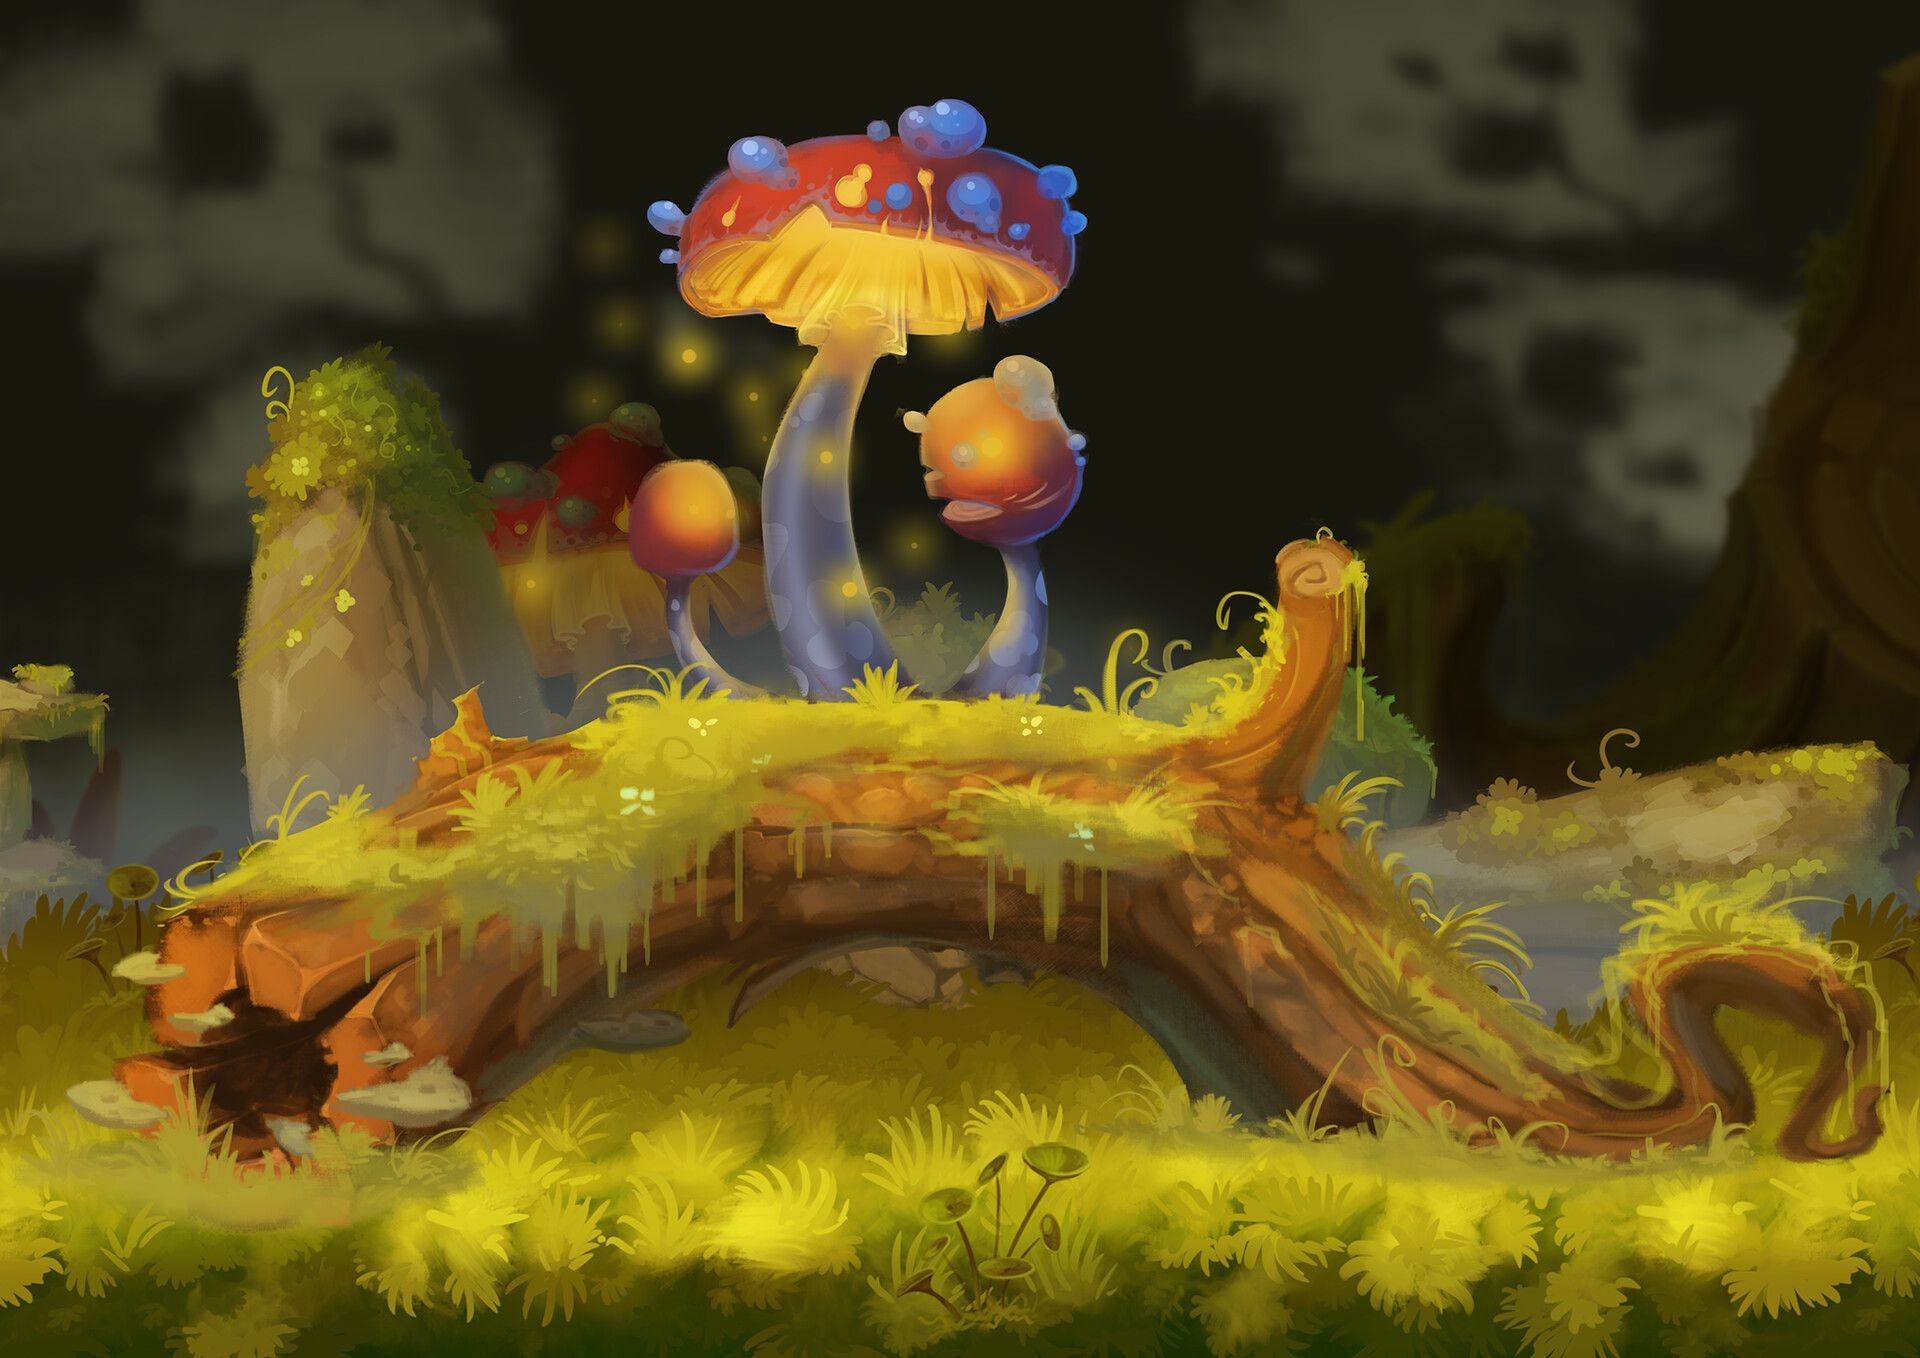 Forest assets 1 by Antoine LatailleA first pick of my